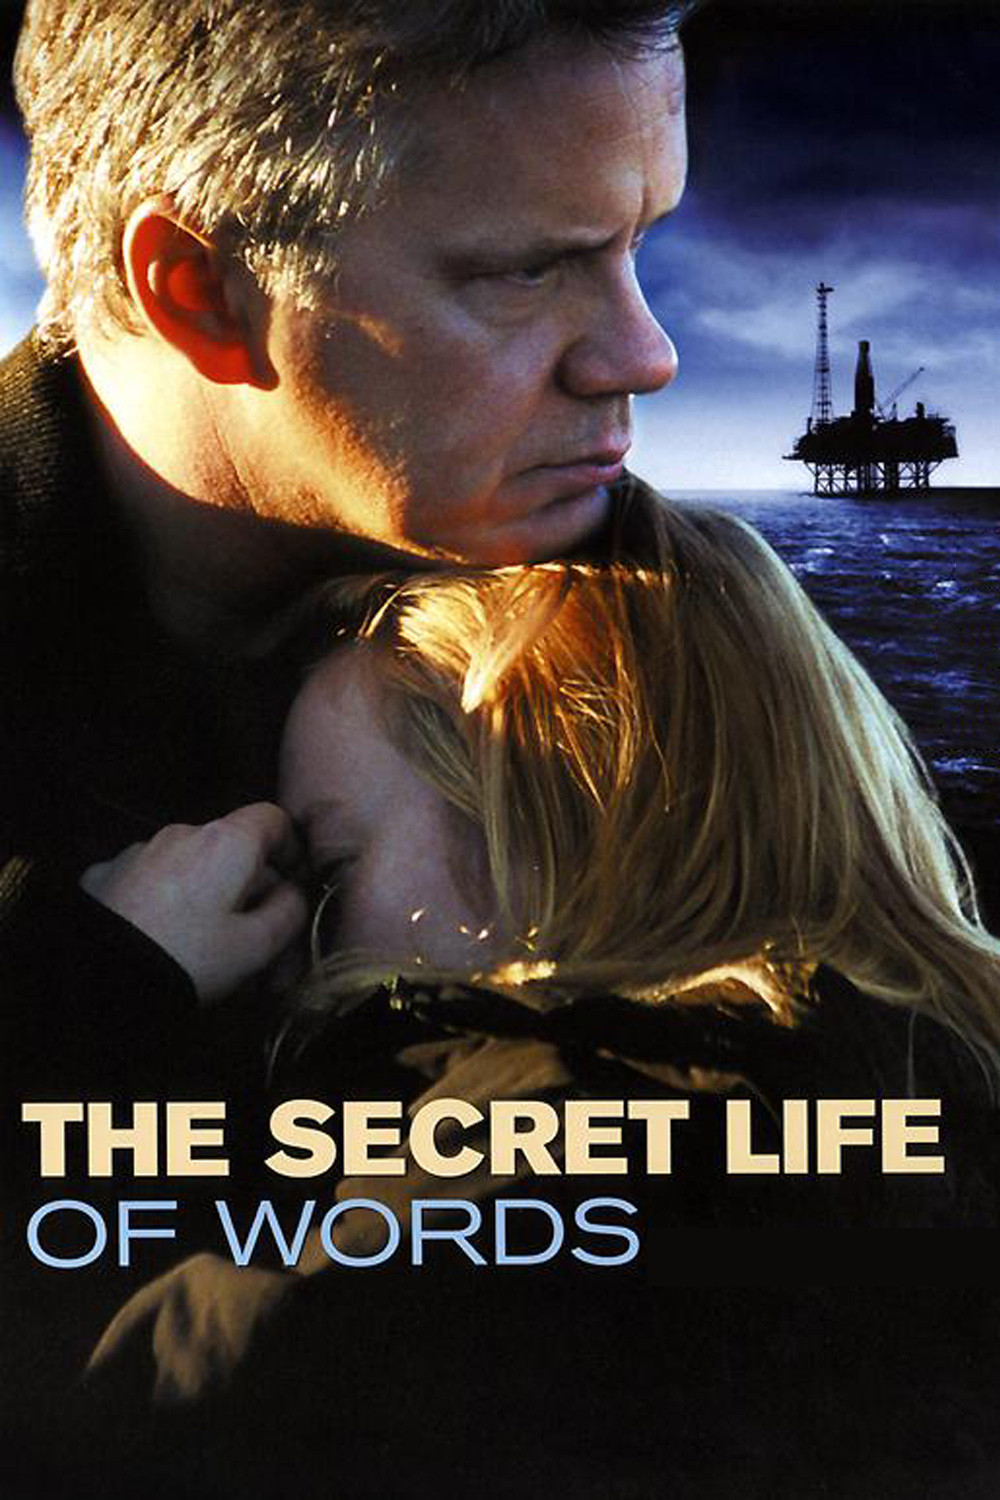 Η Μυστική Ζωή των Λέξεων / The Secret Life of Words / La Vida Secreta de las Palabras (2005)